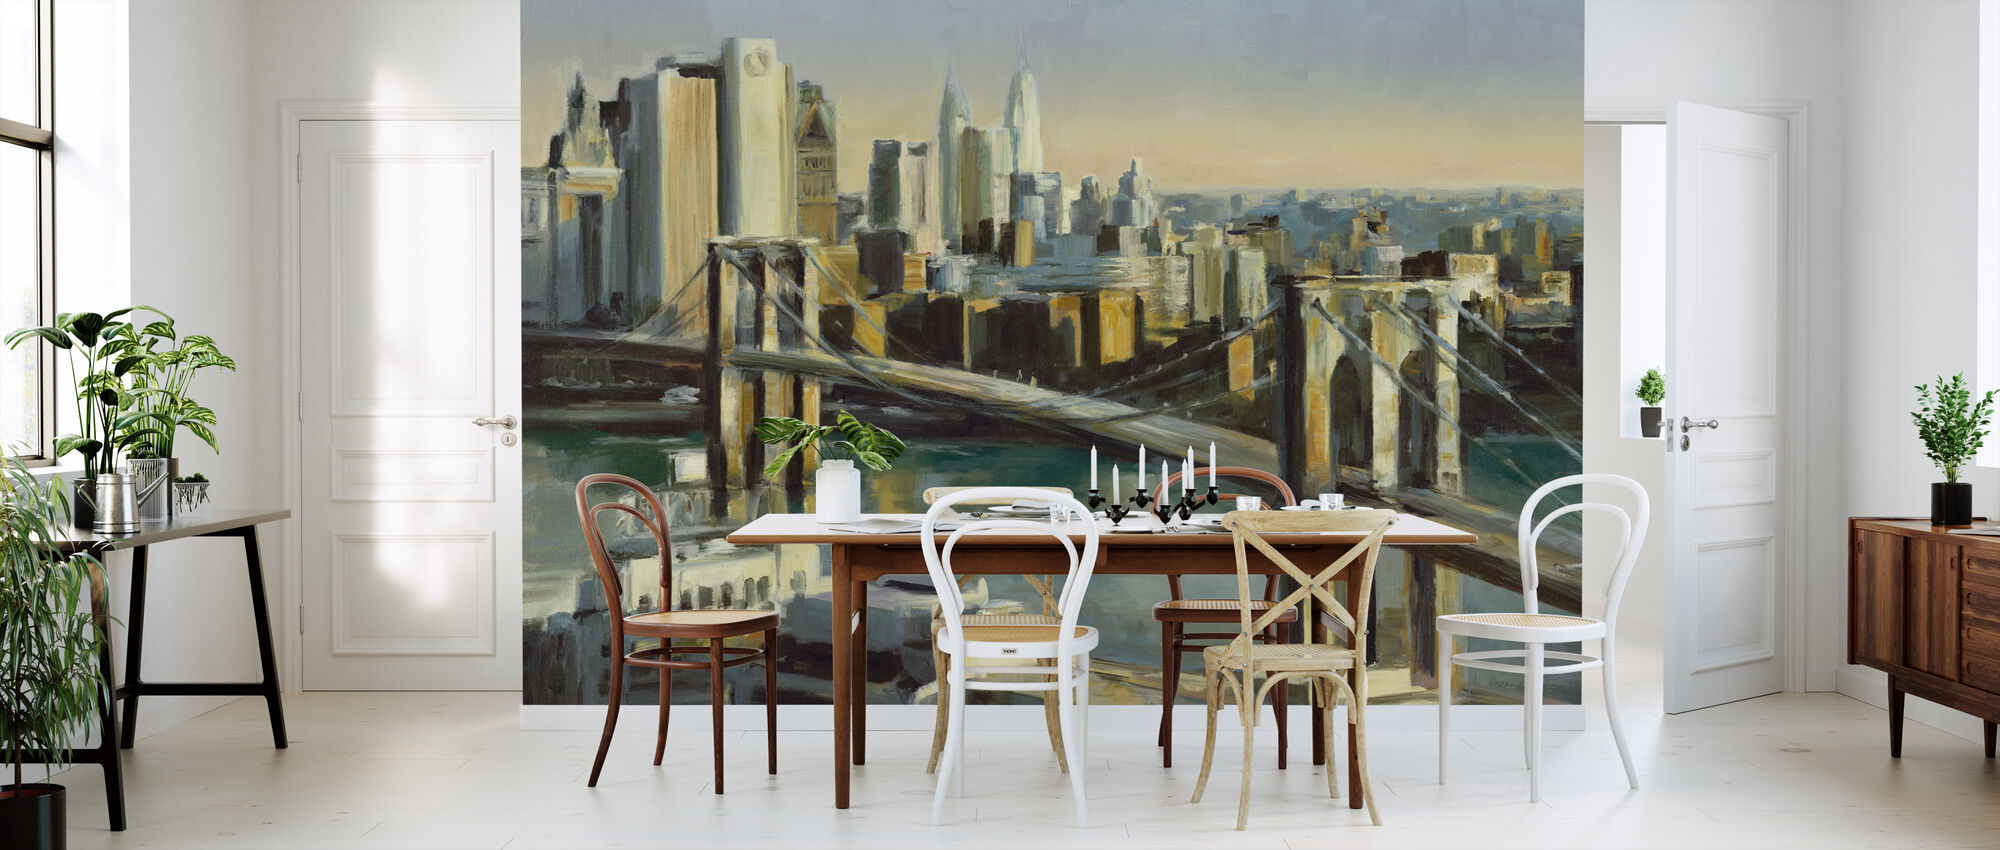 Into Manhattan - Wallpaper - Kitchen